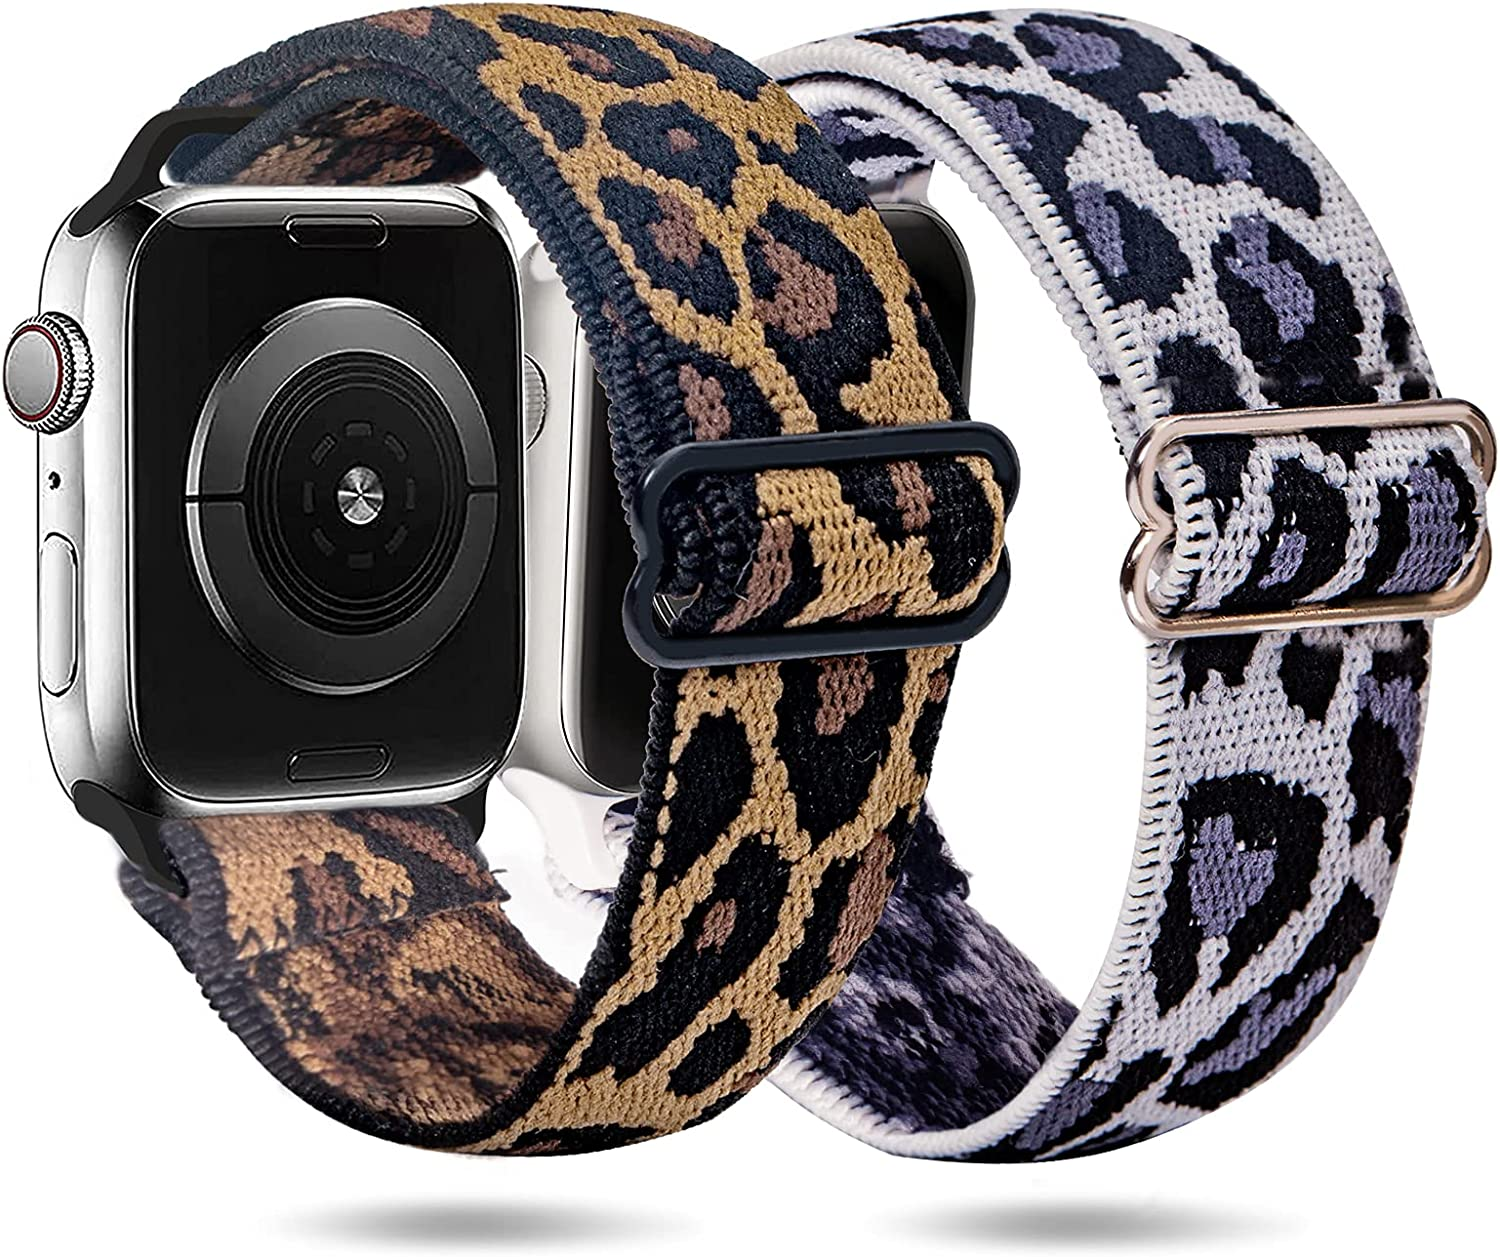 2 Pack Compatible with Apple Watch Bands 38mm 40mm 42mm 44mm for Women Men, ANDOLO Stretchy Nylon Solo Loop Smartwatch Bands Wristbands Replacement Strap for iWatch Series 7 6 5 4 3 2 SE